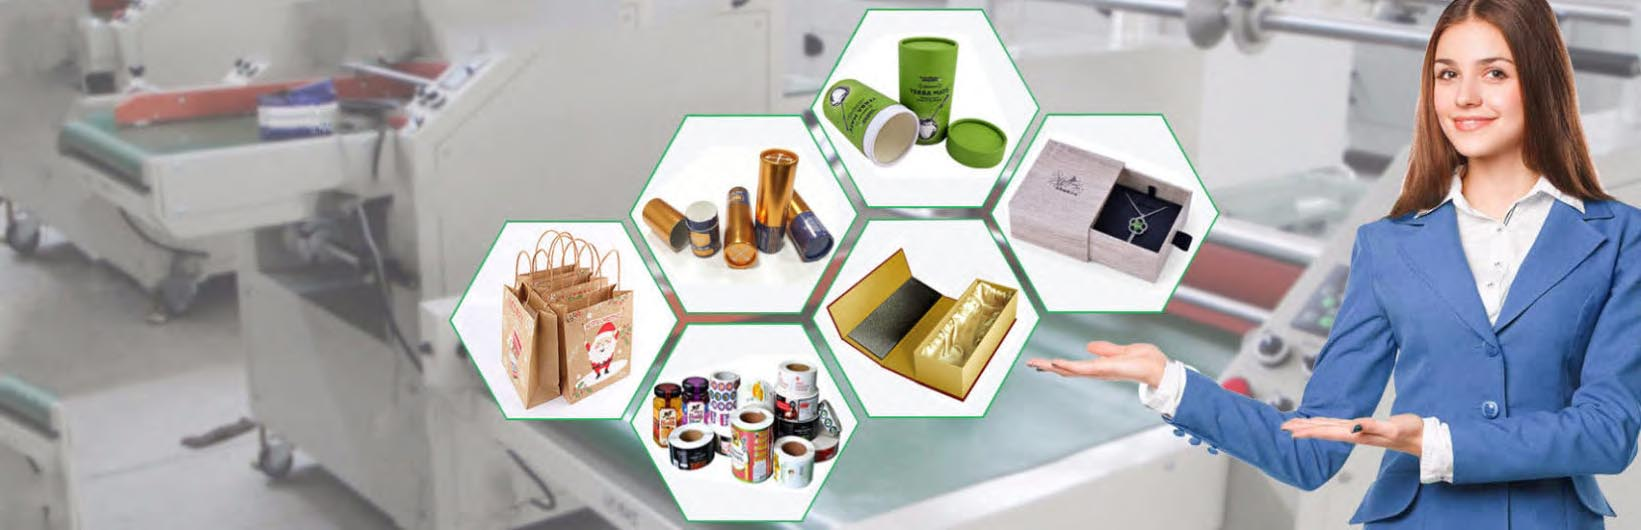 Major custom packaging company products show